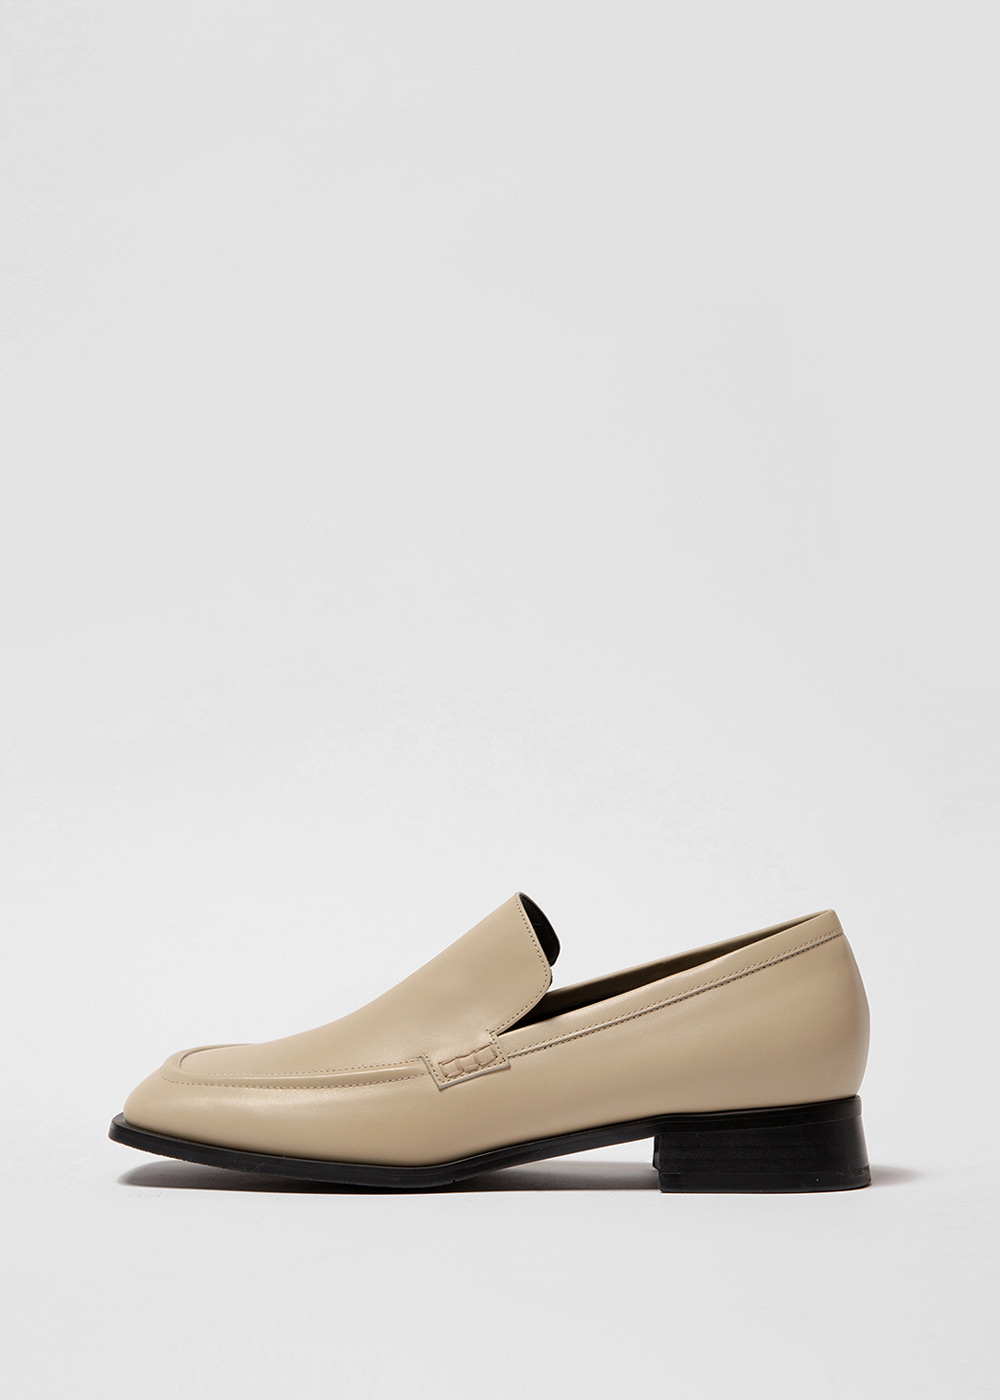 WIDE SQUARE LOAFER [C1F07 YB]